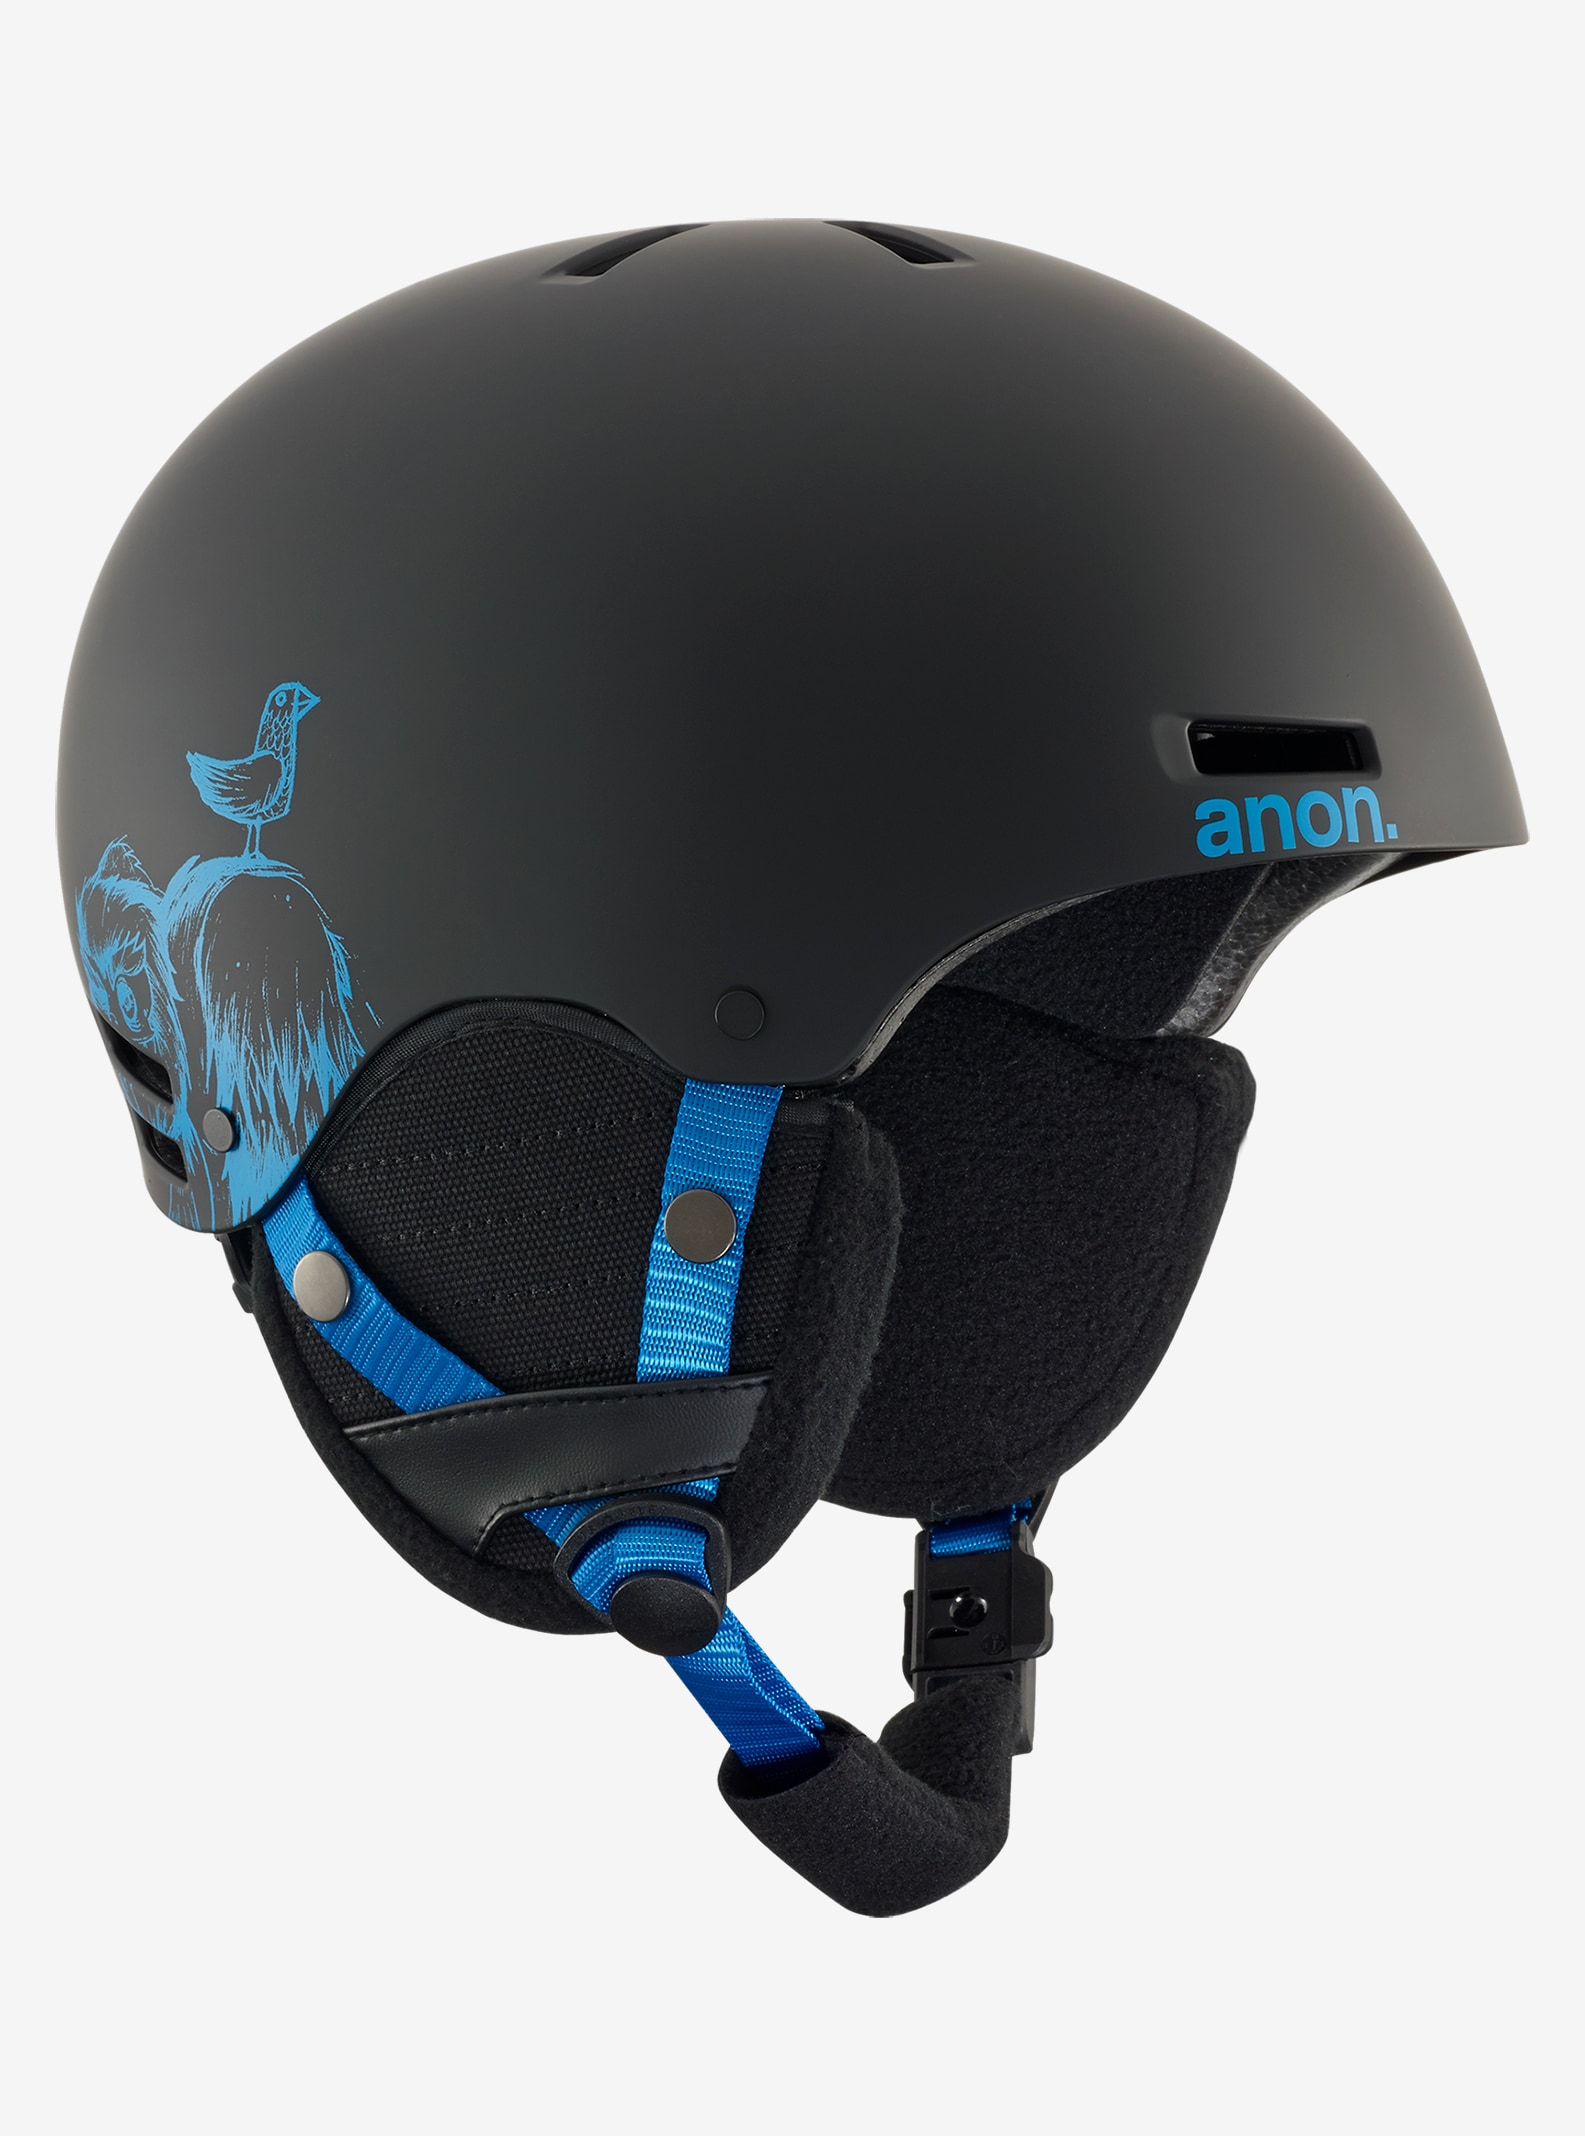 Kids' Anon Rime Helmet shown in Sulley Black